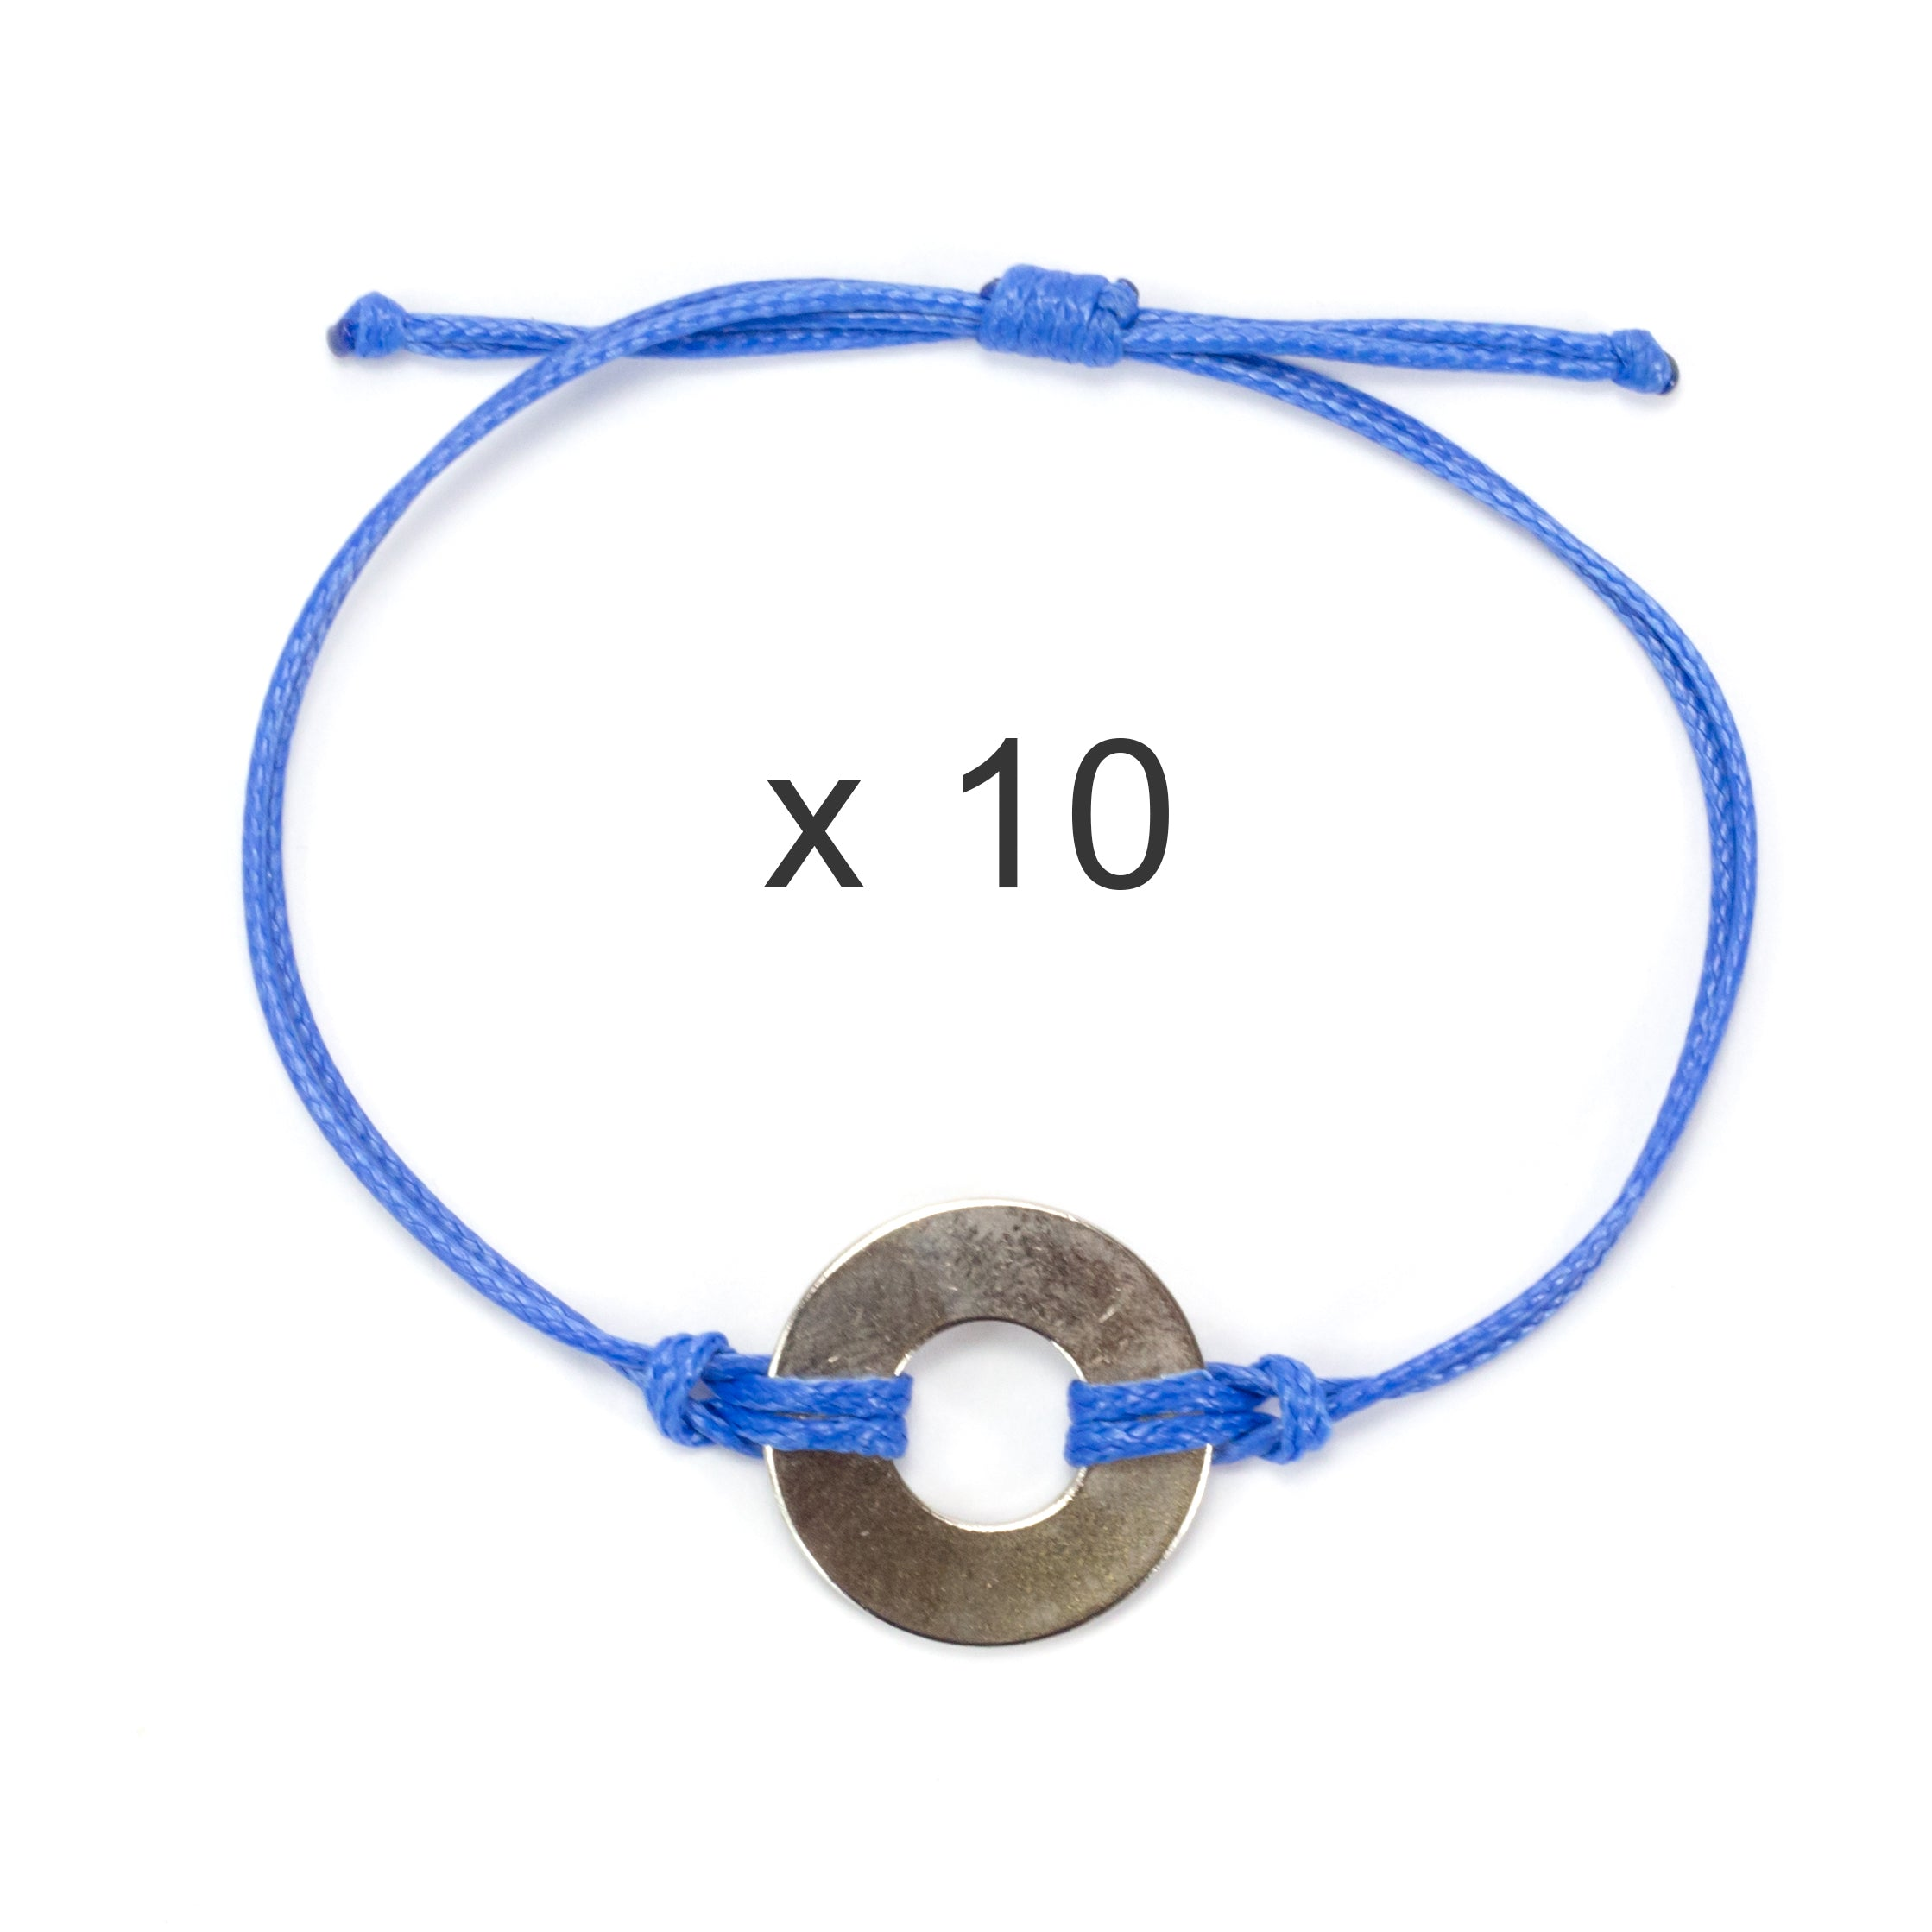 MyIntent Refill Classic Bracelets Blue String set of 10 with Nickel tokens